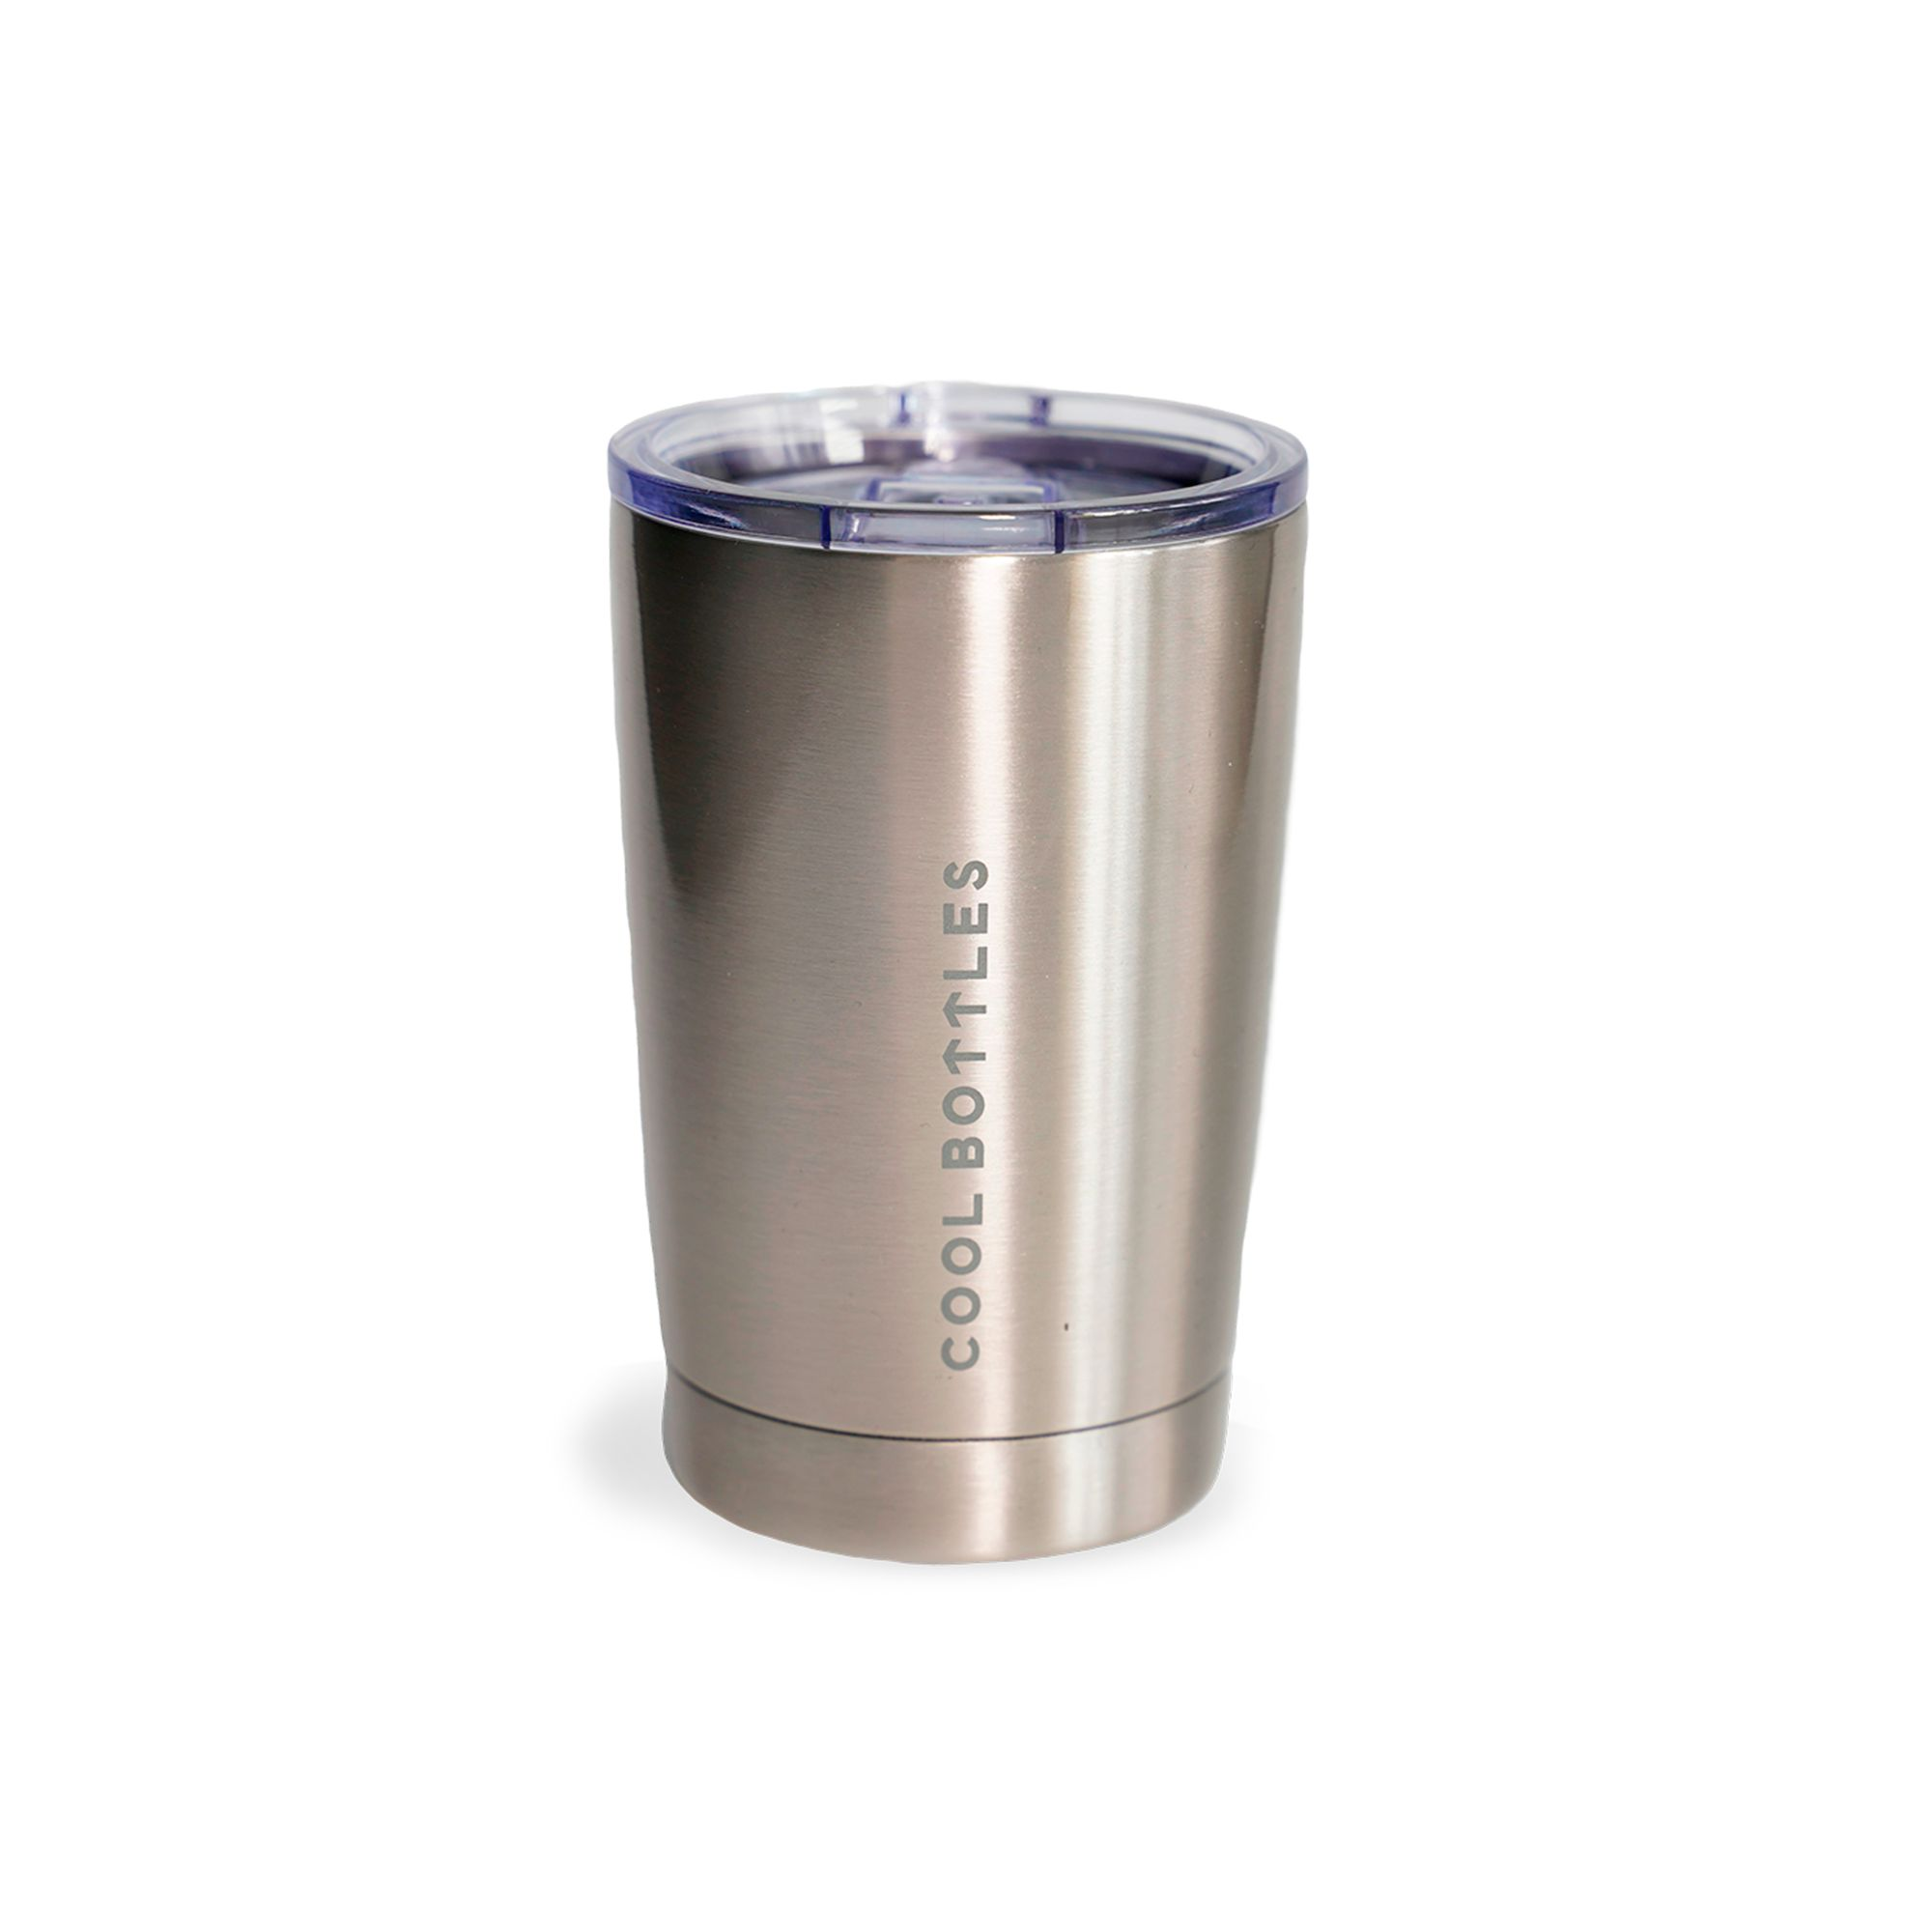 Vaso de acero inoxidable Metallic Silver